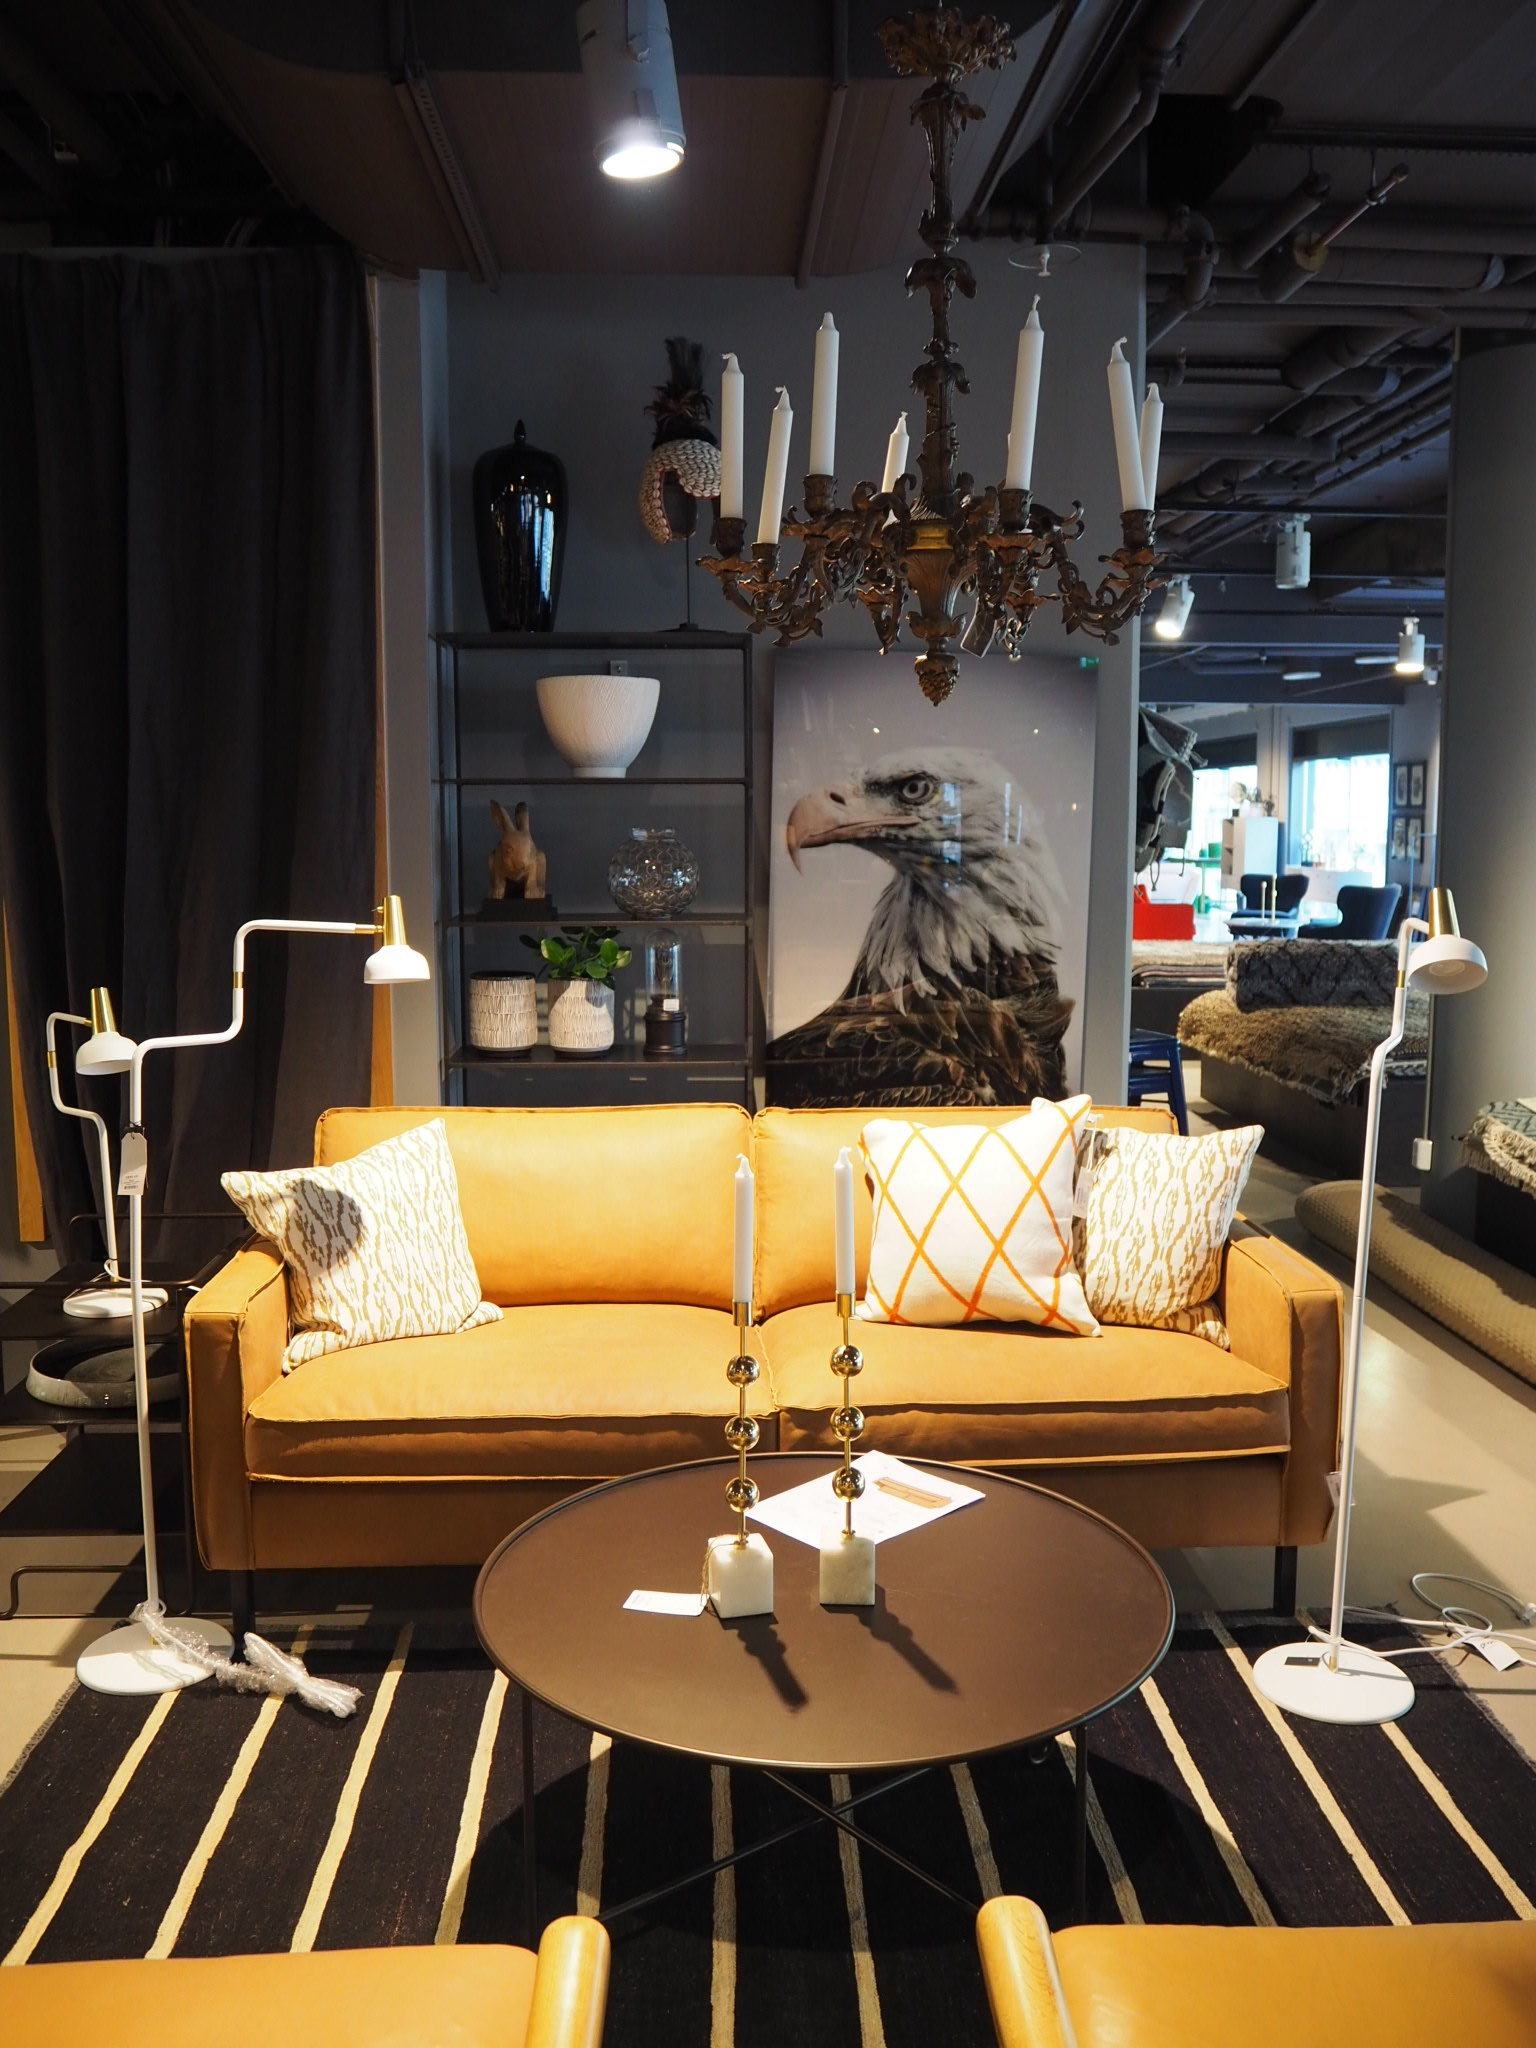 Homeware brand Posh living, stockholm